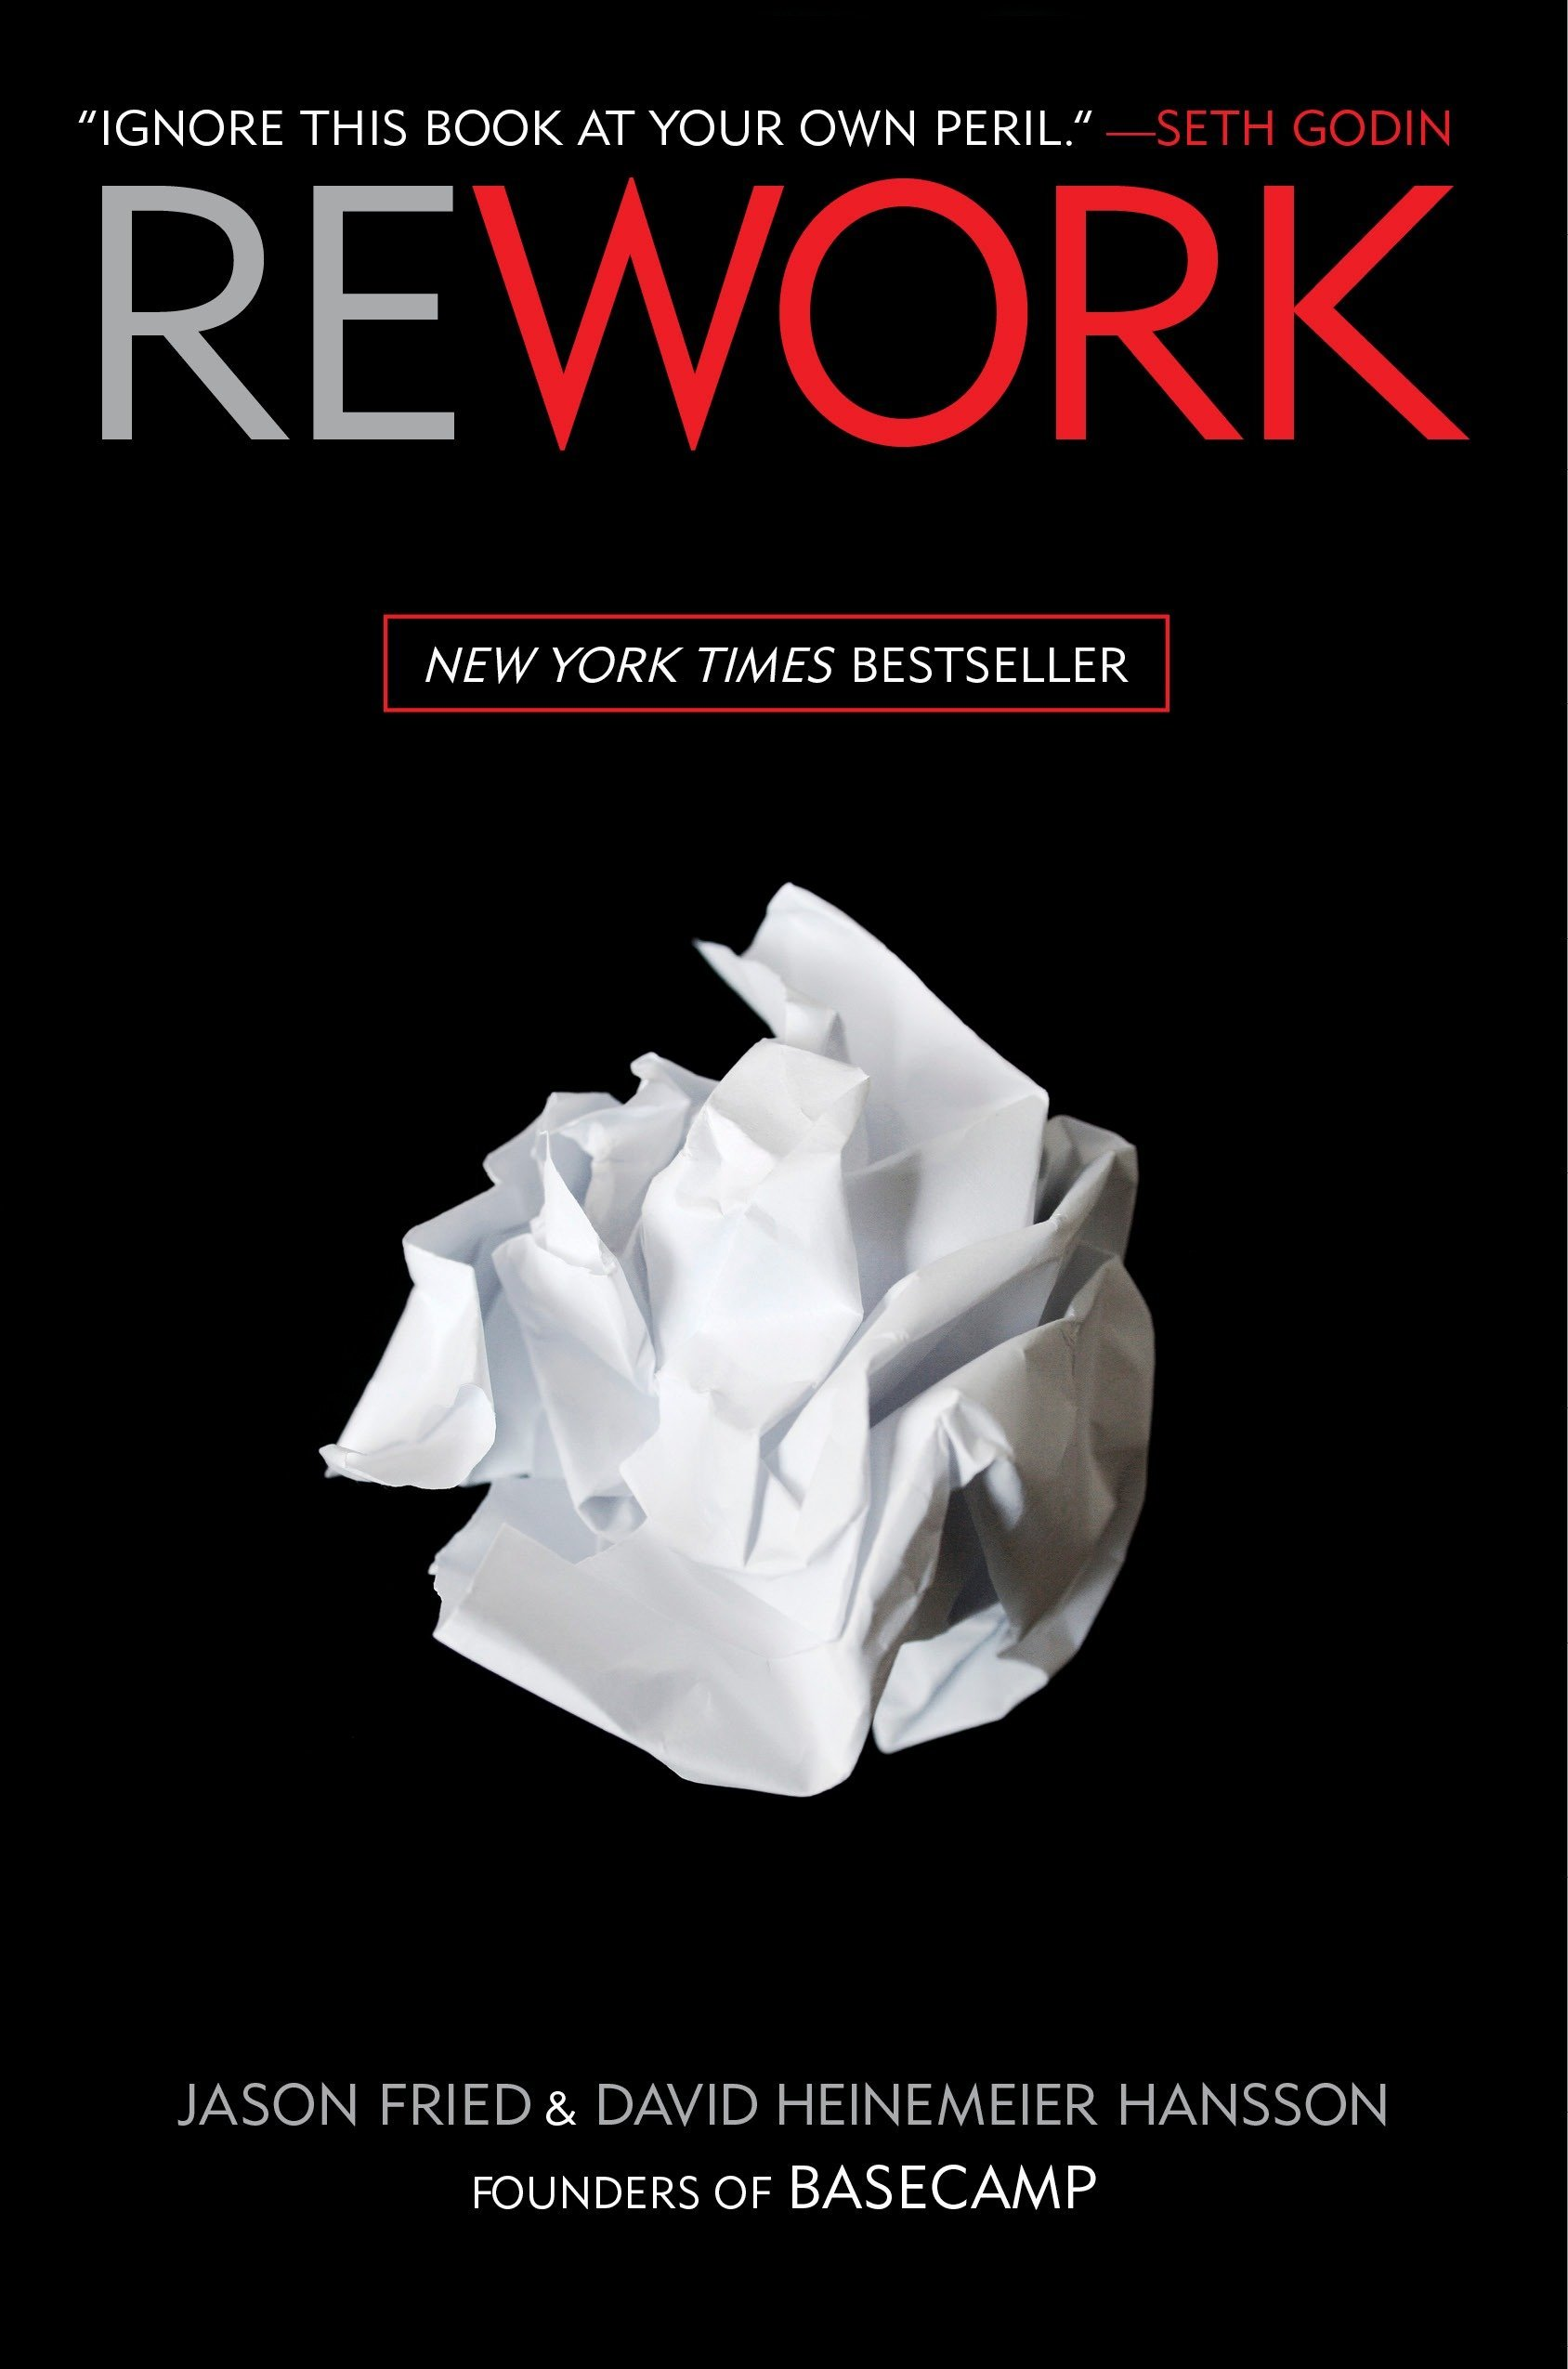 image of book cover of Rework